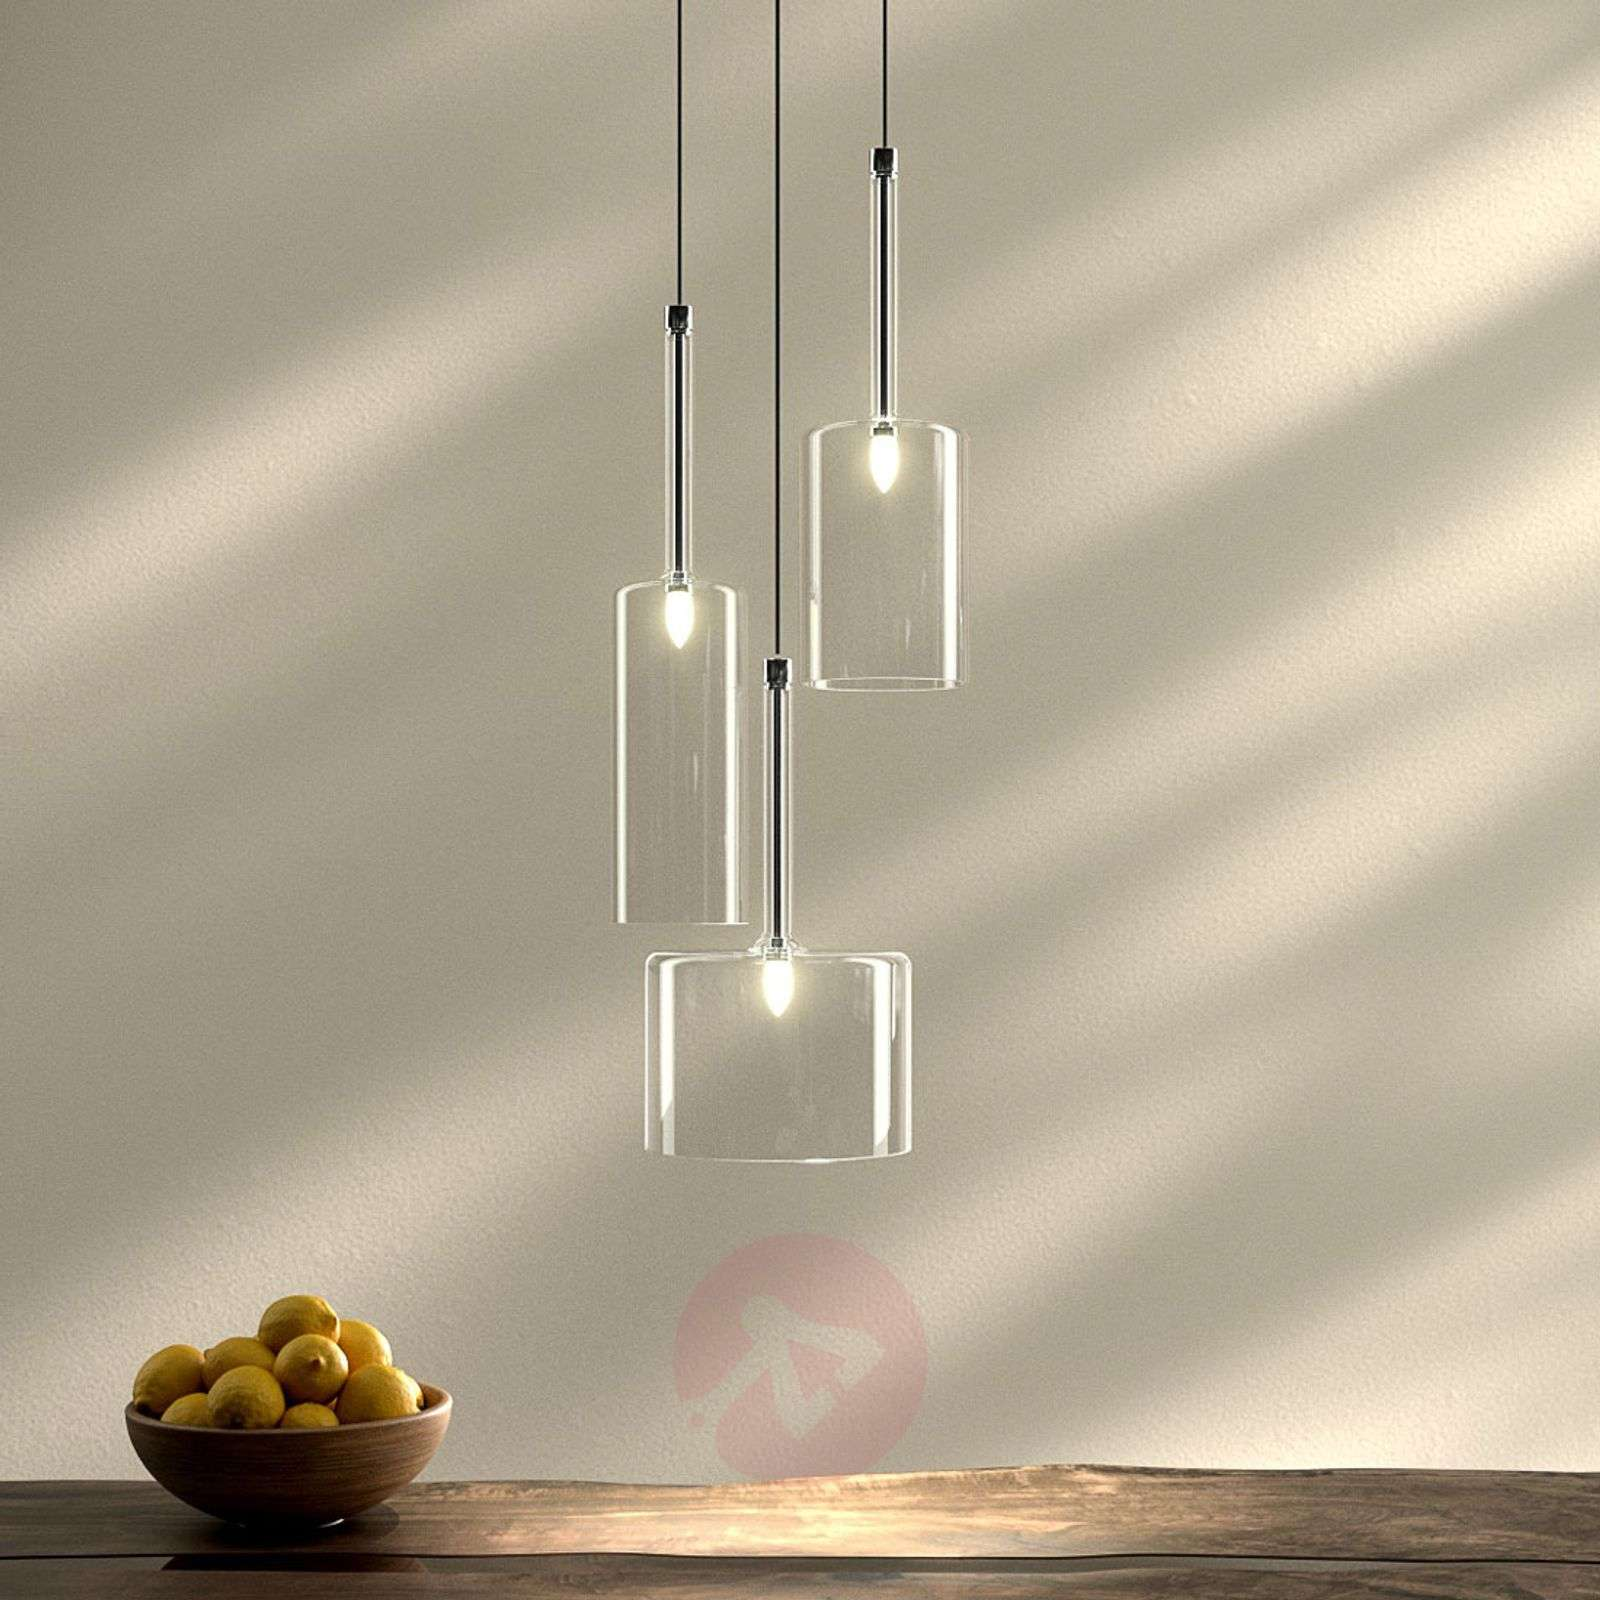 Spillray three-bulb glass pendant light-1088087-01